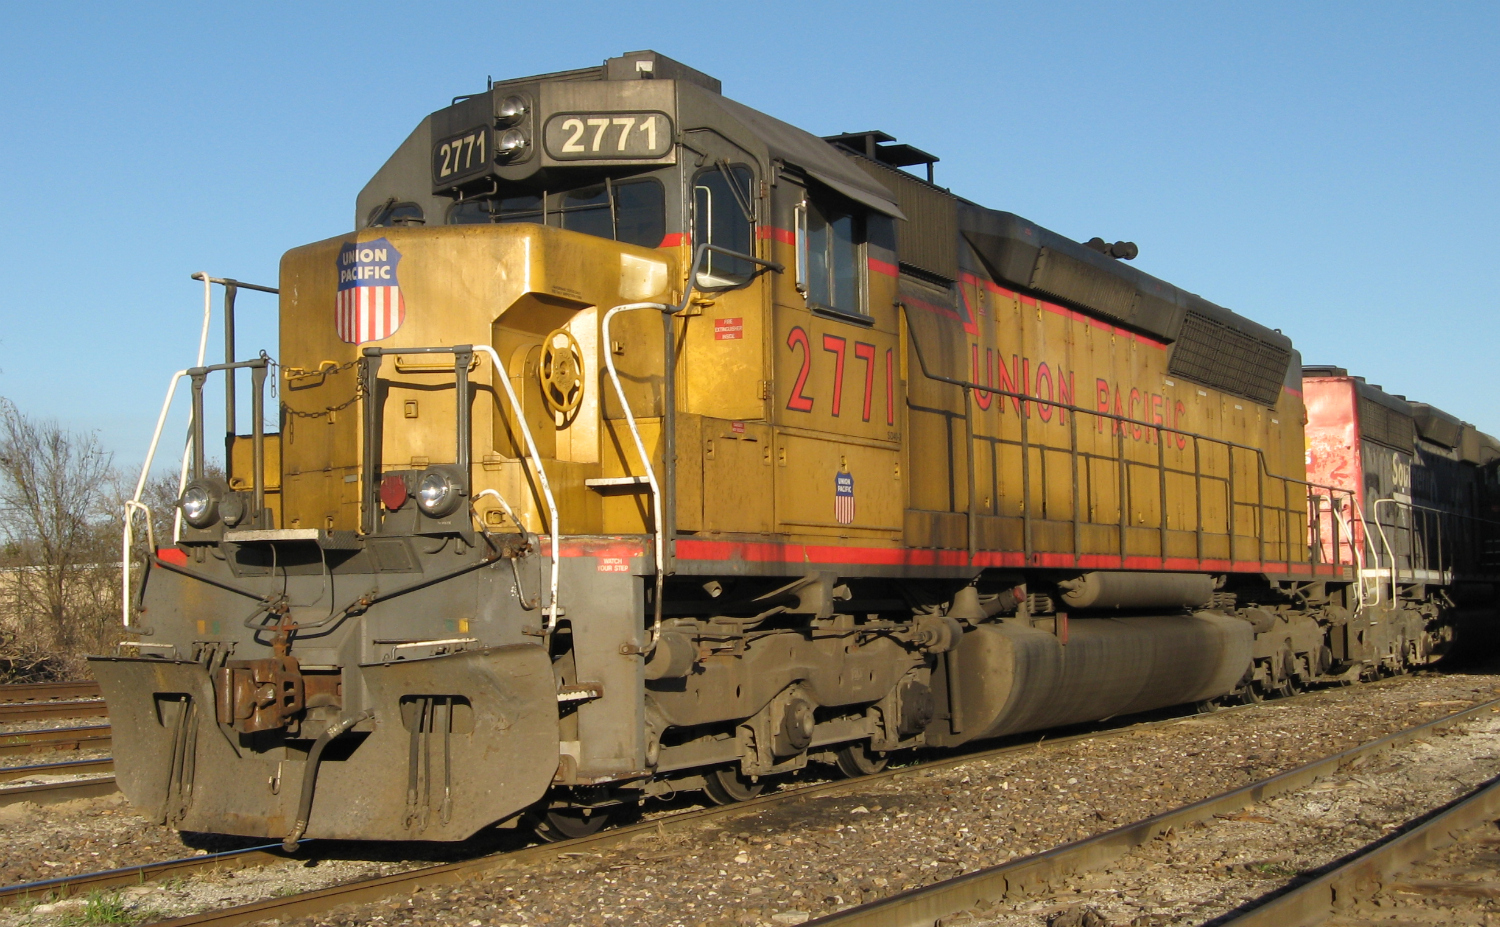 UP 2771 was built in 1970 as